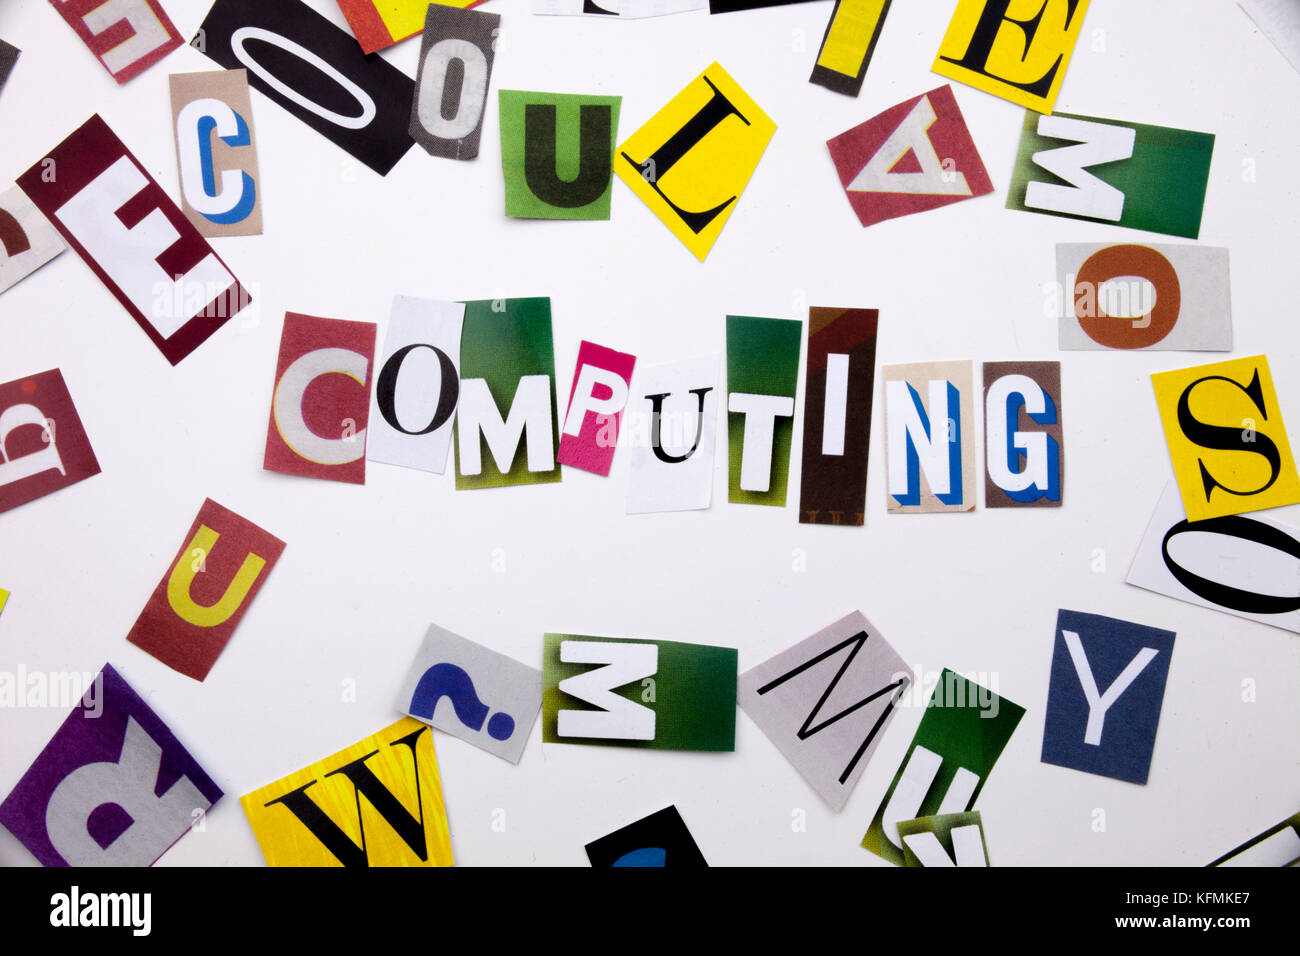 A word writing text showing concept of COMPUTING made of different magazine newspaper letter for Business case on - Stock Image